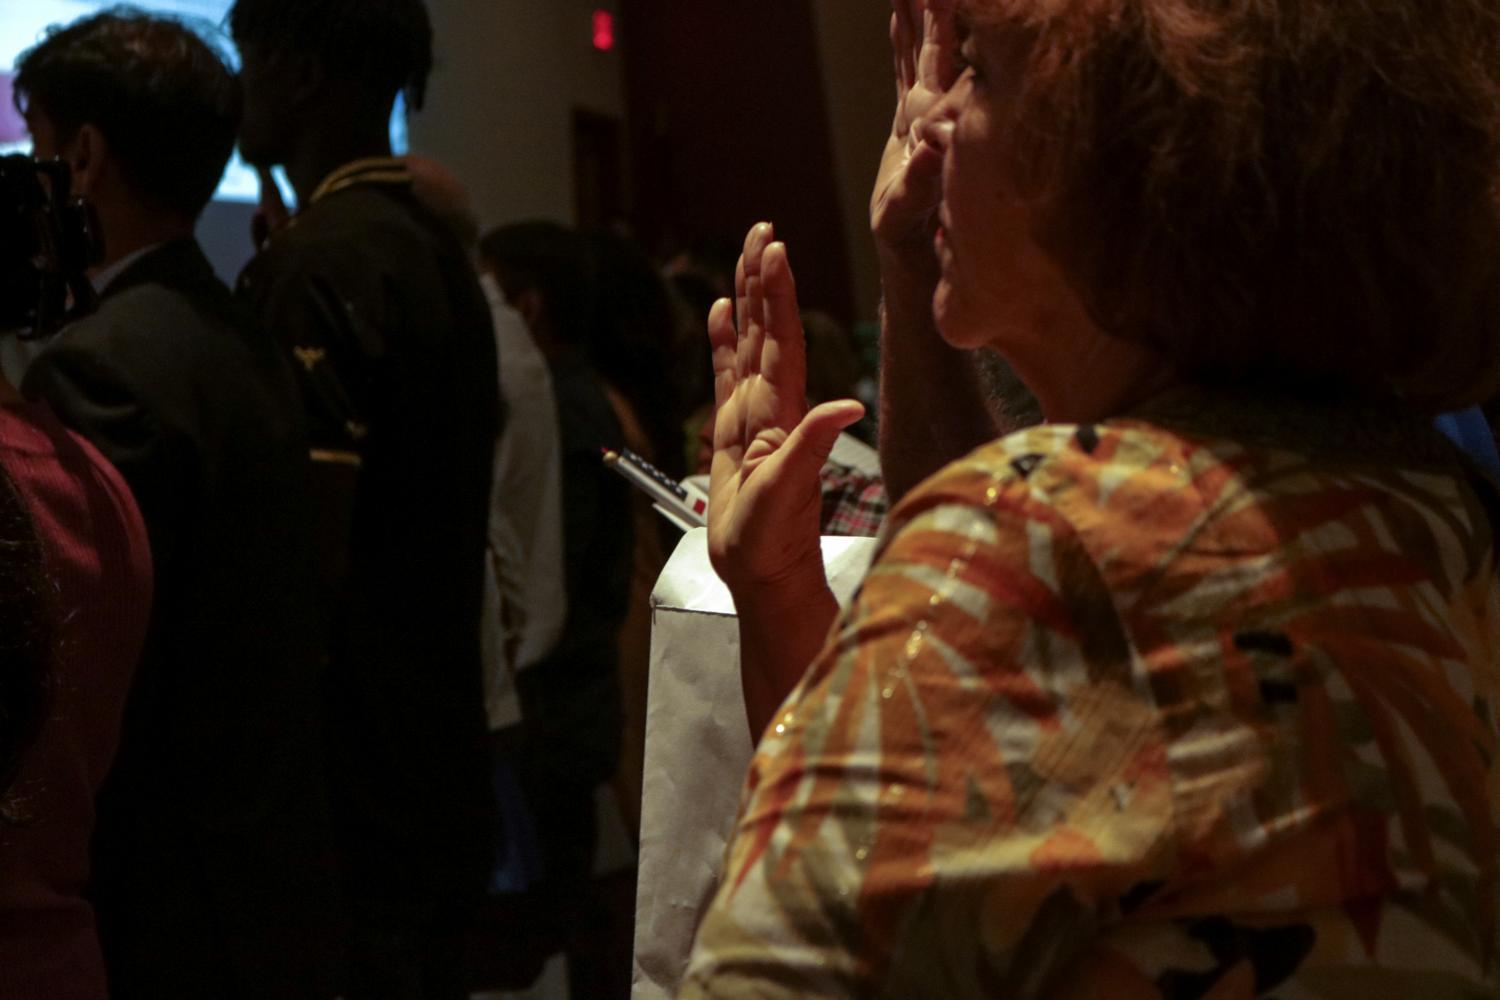 A new citizen takes the Oath of Allegiance